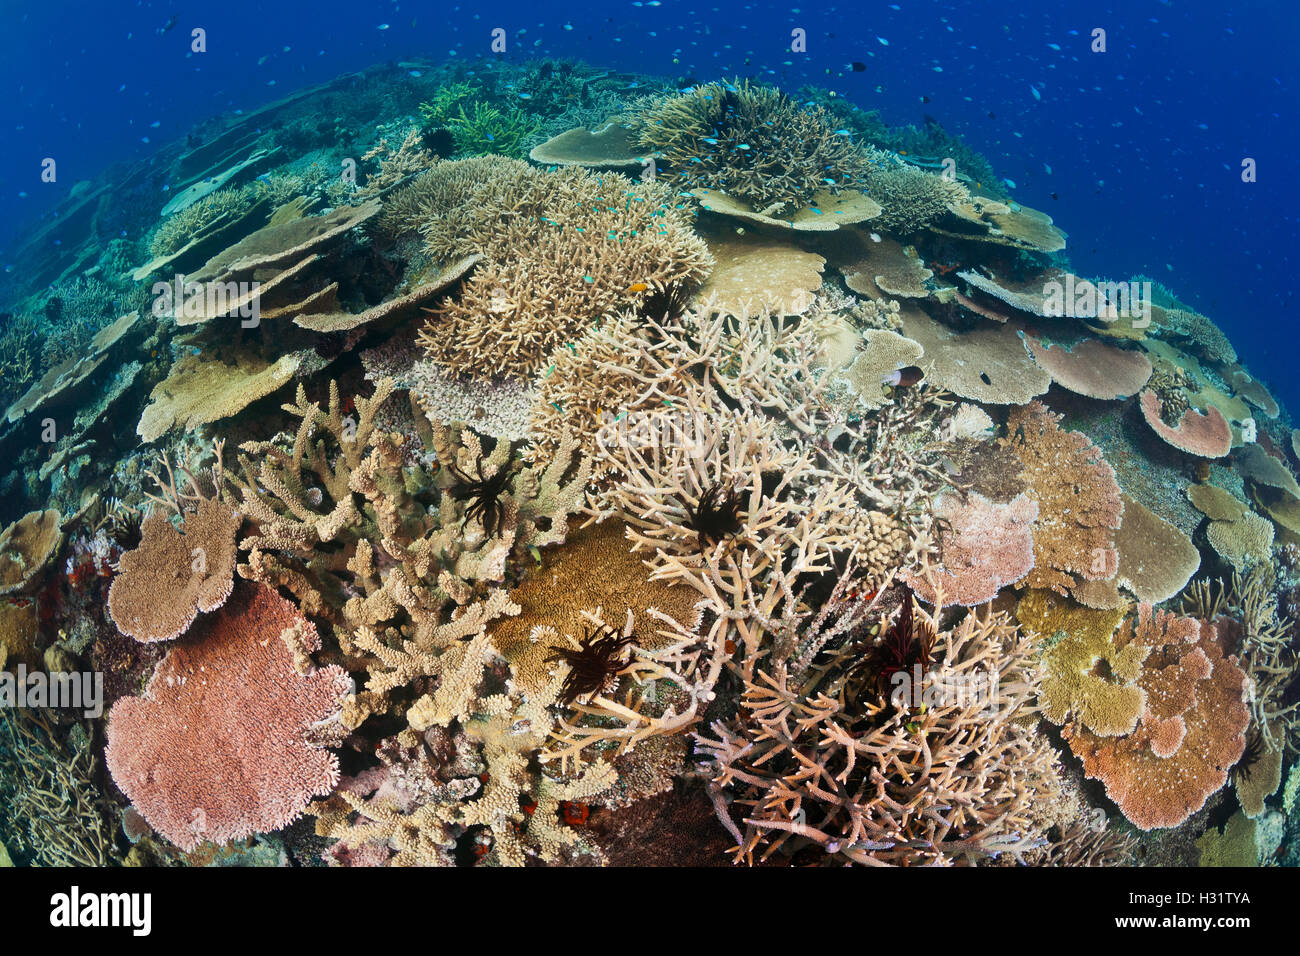 QZ0828-D. Healthy coral reef with impressive hard coral species diversity and coverage. Australia, Great Barrier - Stock Image